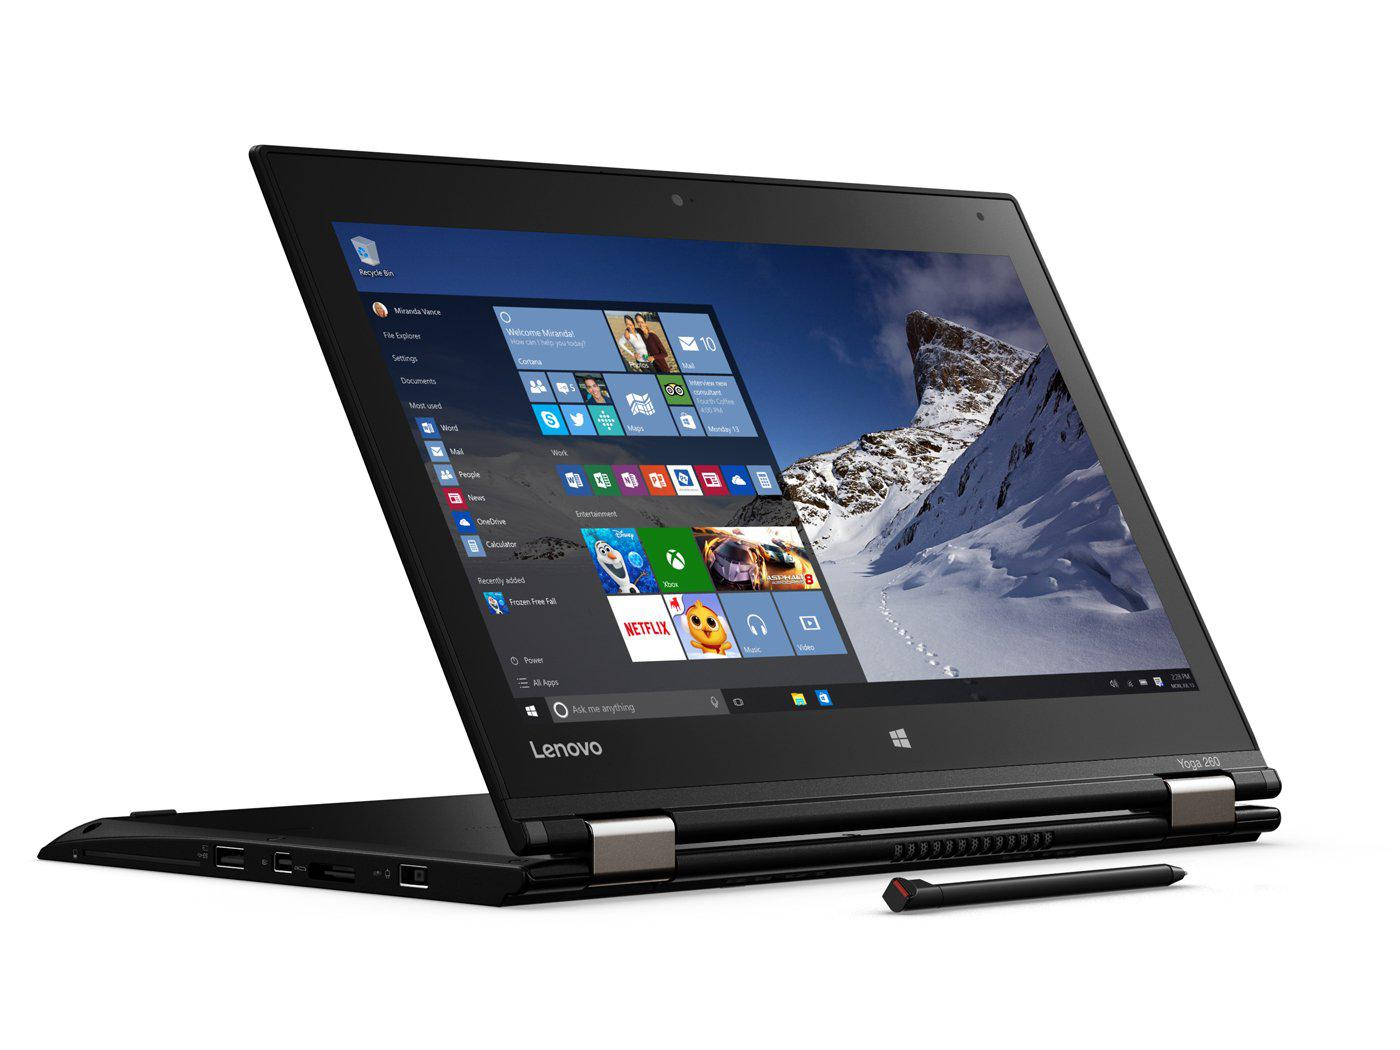 "Lenovo Thinkpad Yoga 260 12.5"" Touchscreen Laptop Intel Core i5 2.4Gz B Grade Windows 10 Refurbished"